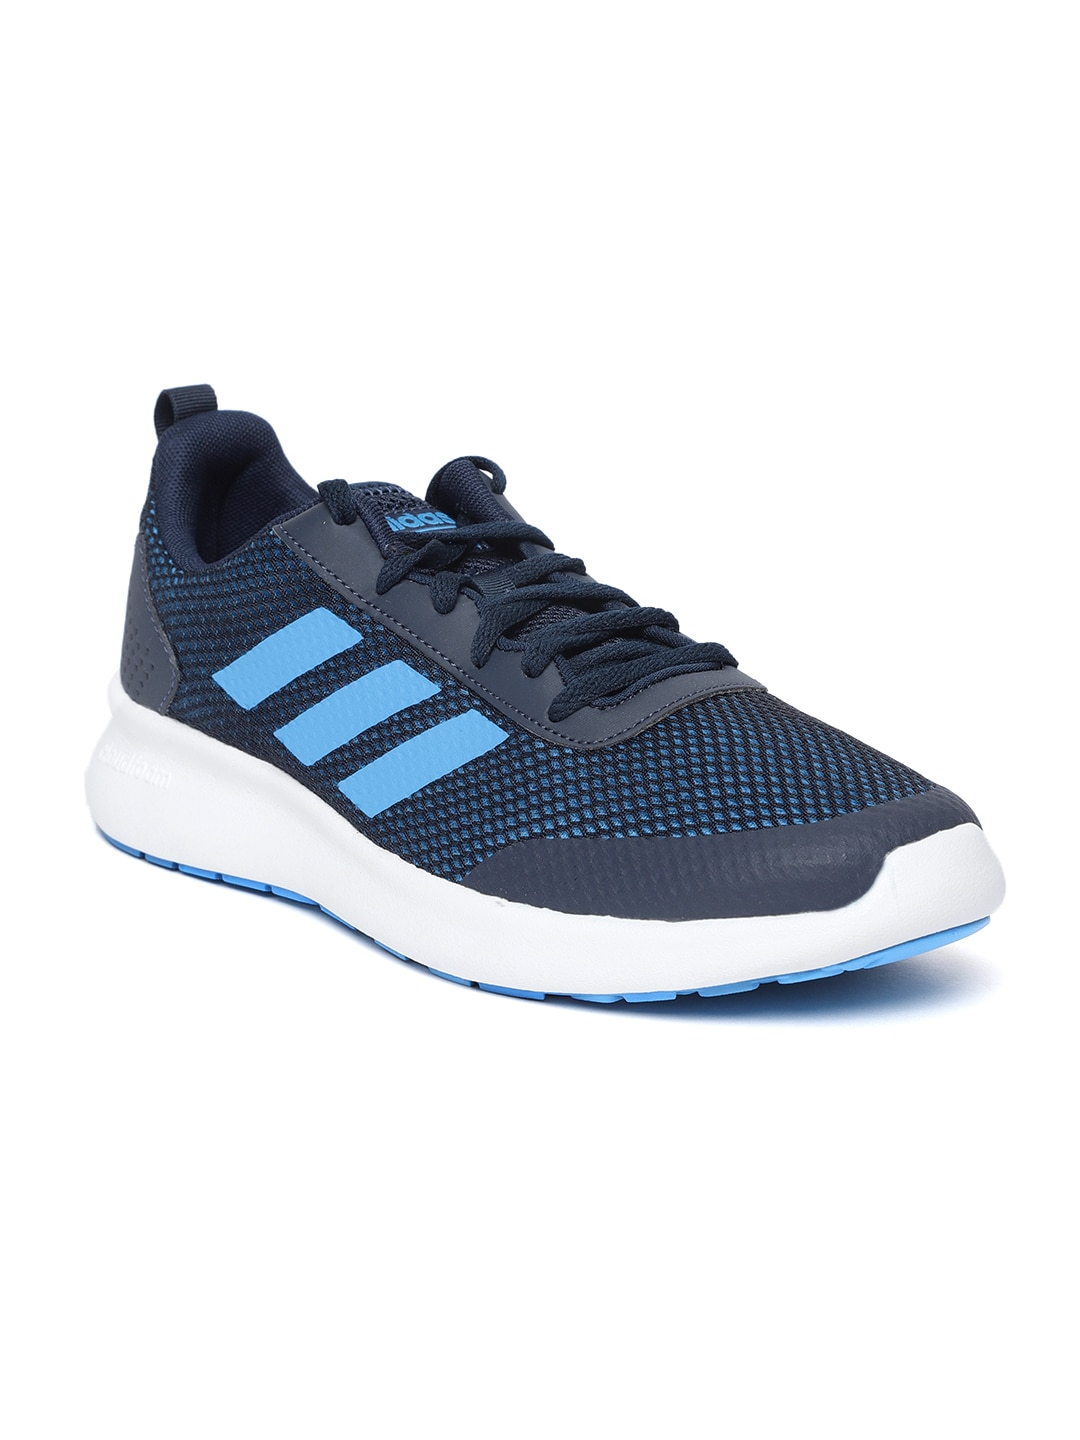 Running Shoes - Buy Running Shoes for Men   Women Online  18db2f919e292